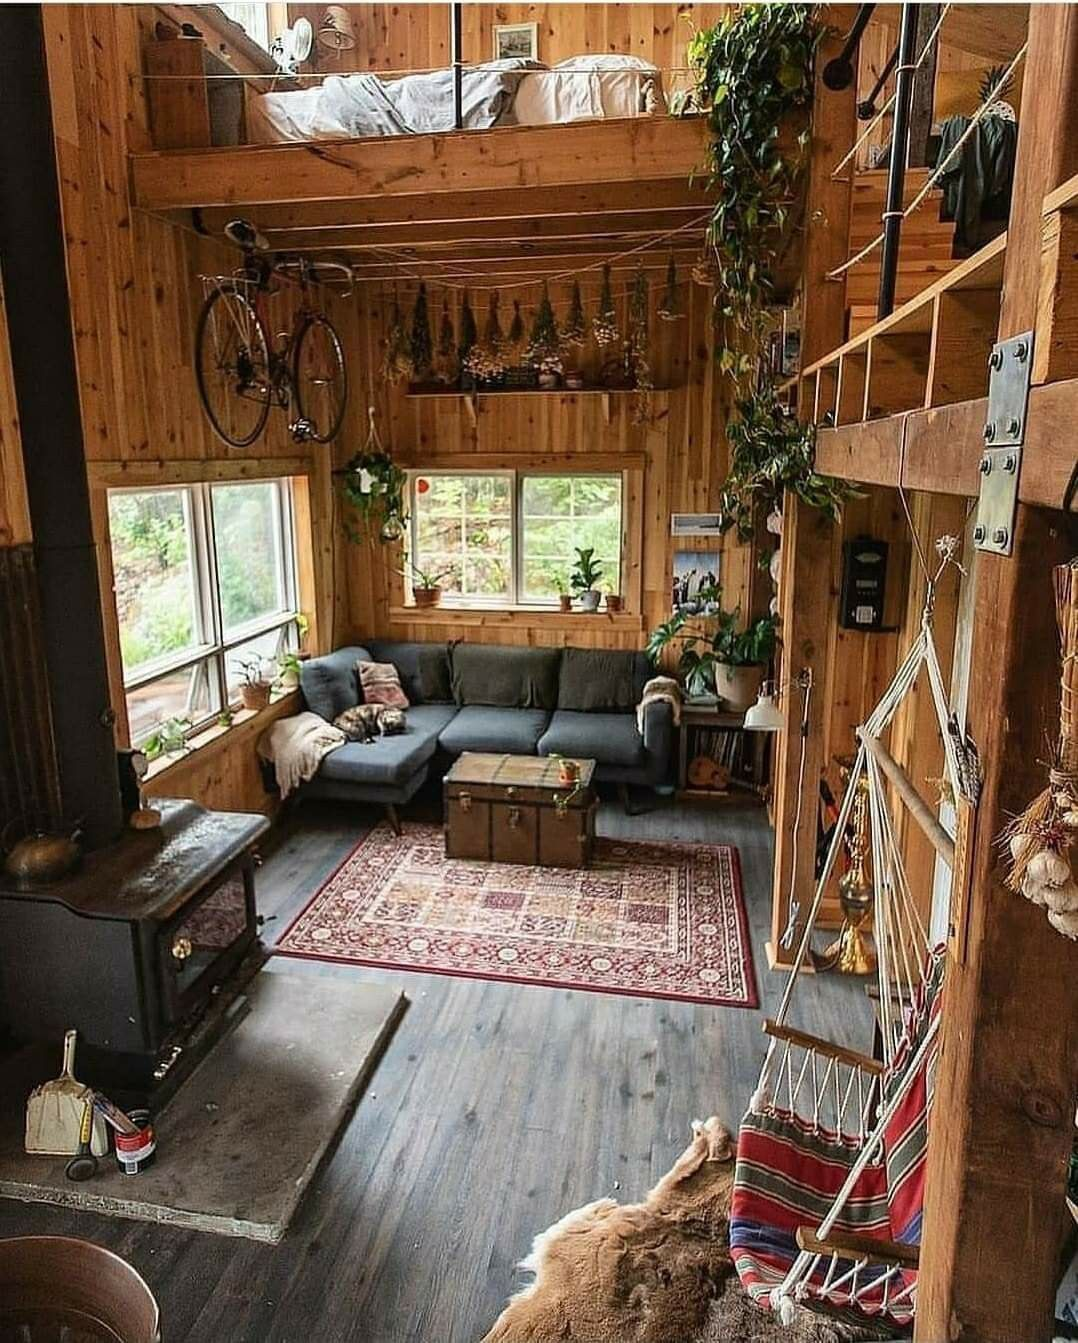 Pin By Barbara James On Dream Home In 2021 Tiny House Cabin Tiny House Design House